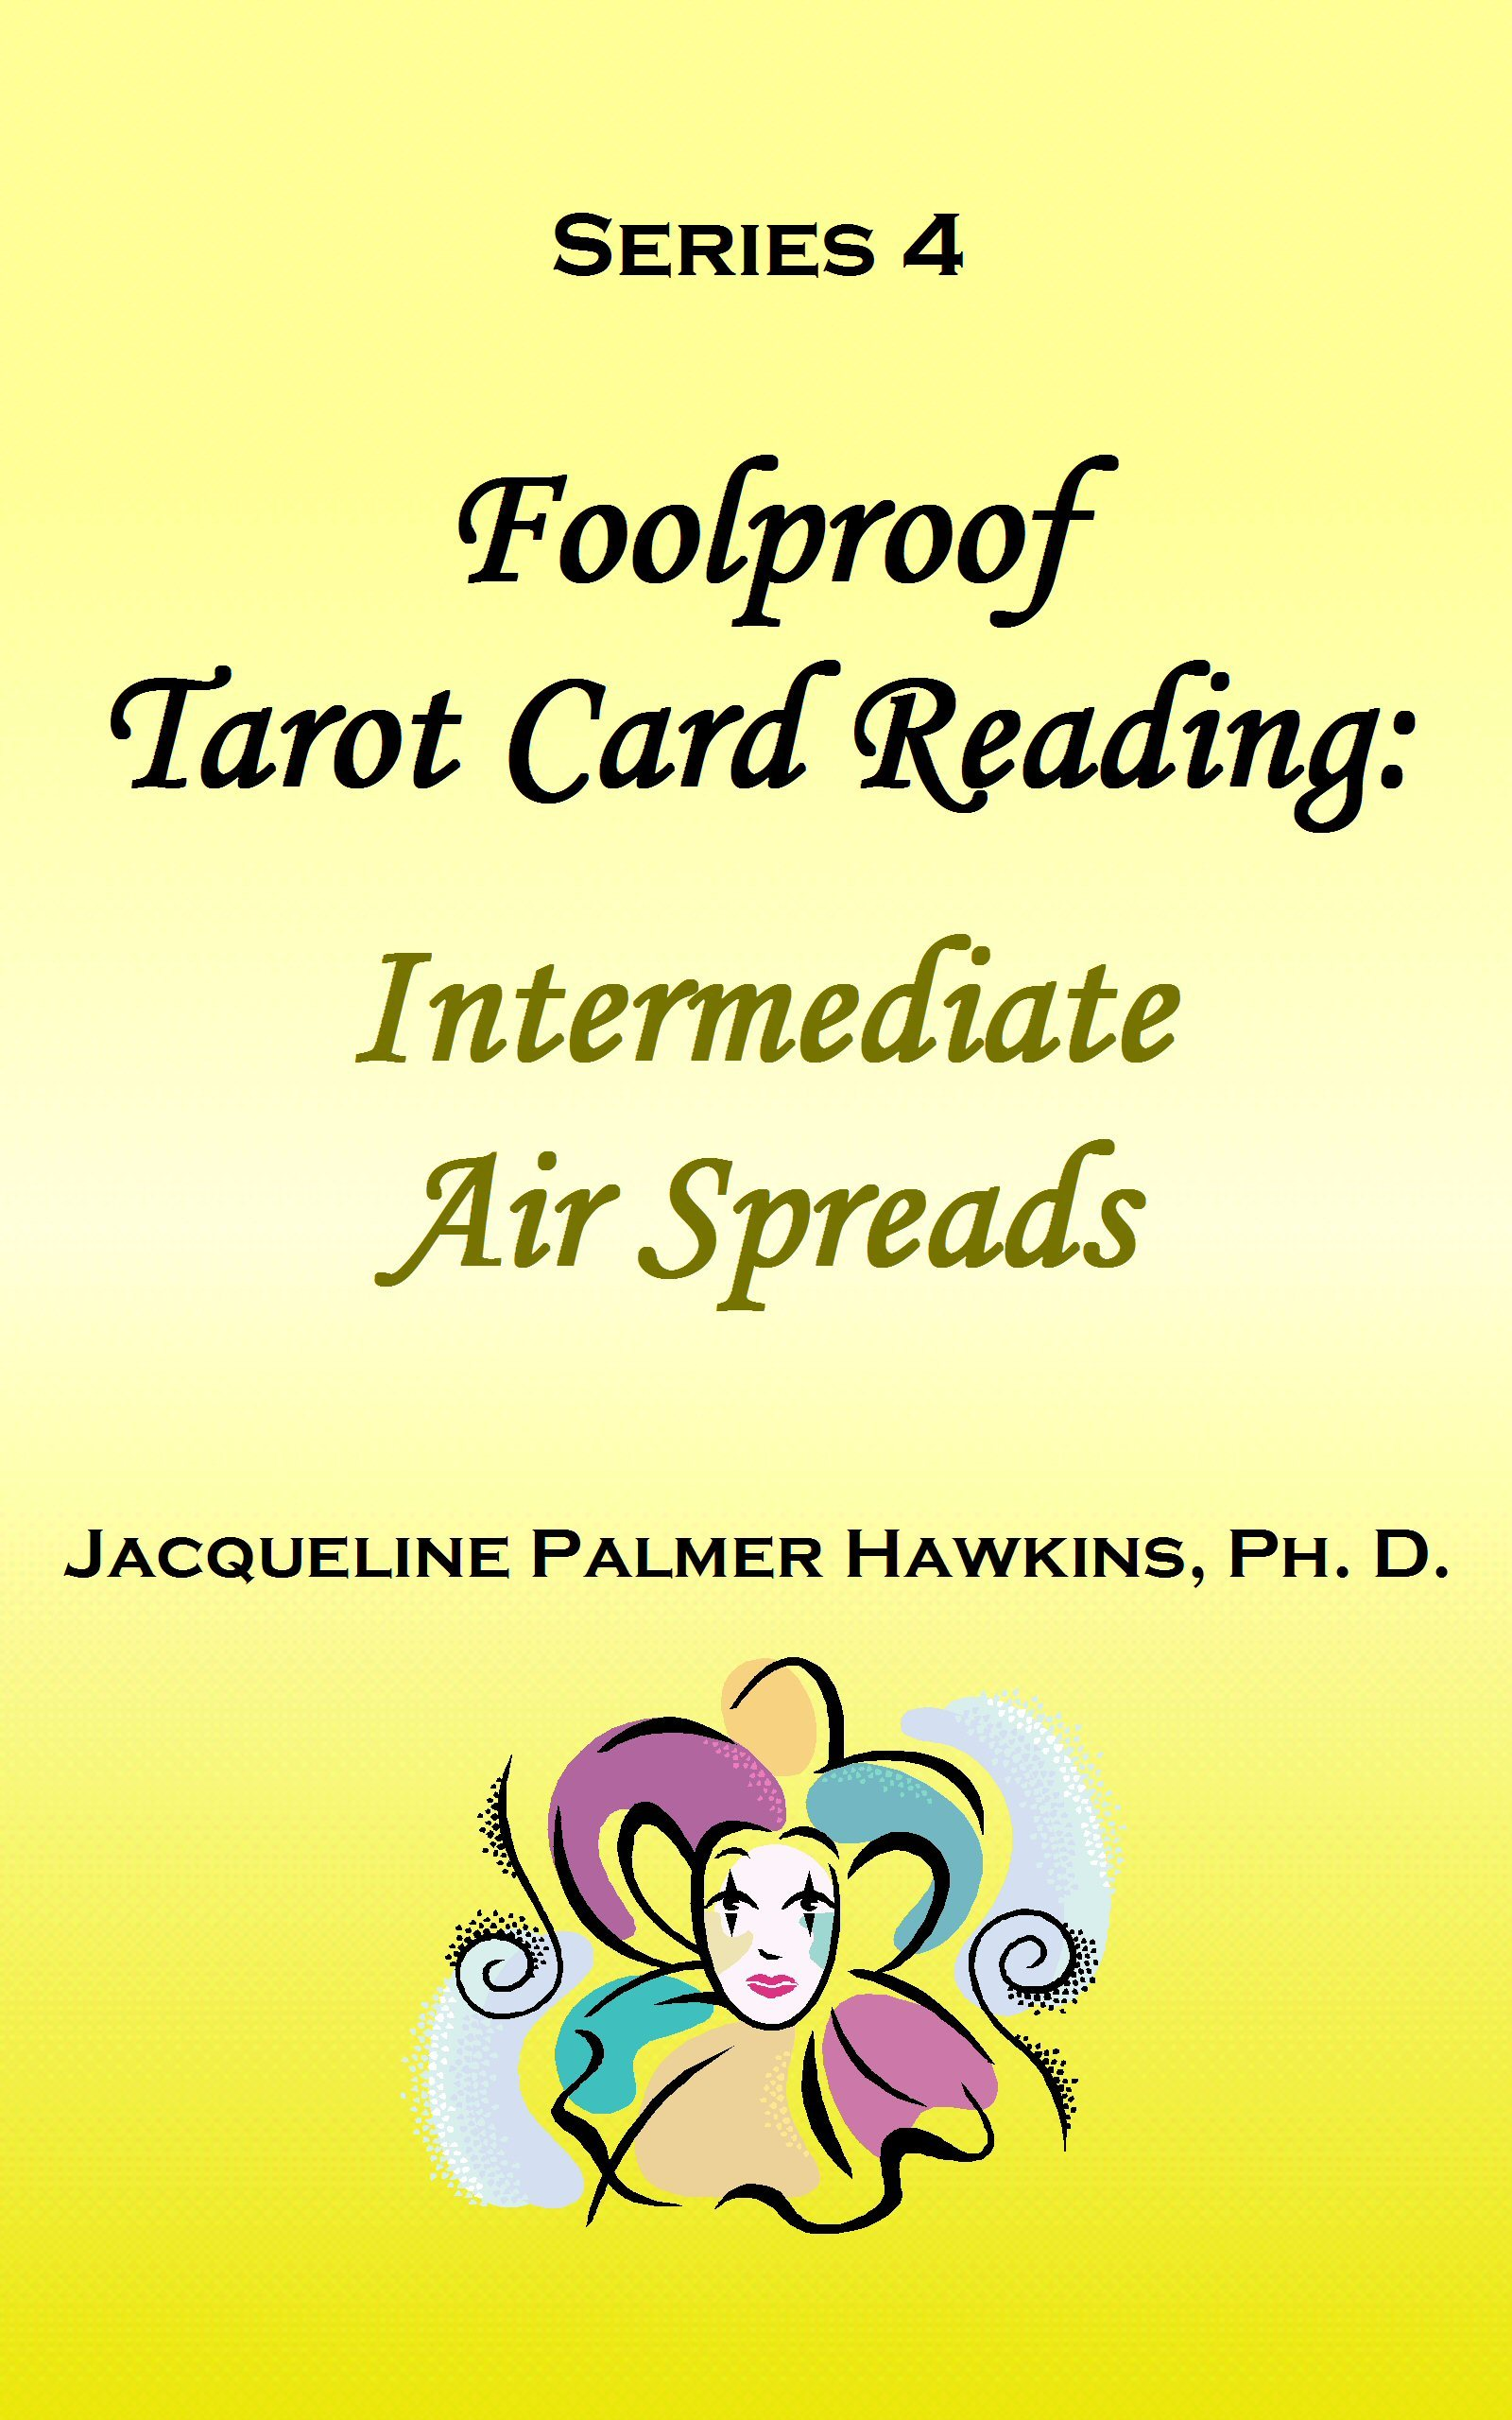 Foolproof Tarot Card Reading: Intermediate Air Spreads - Series 4